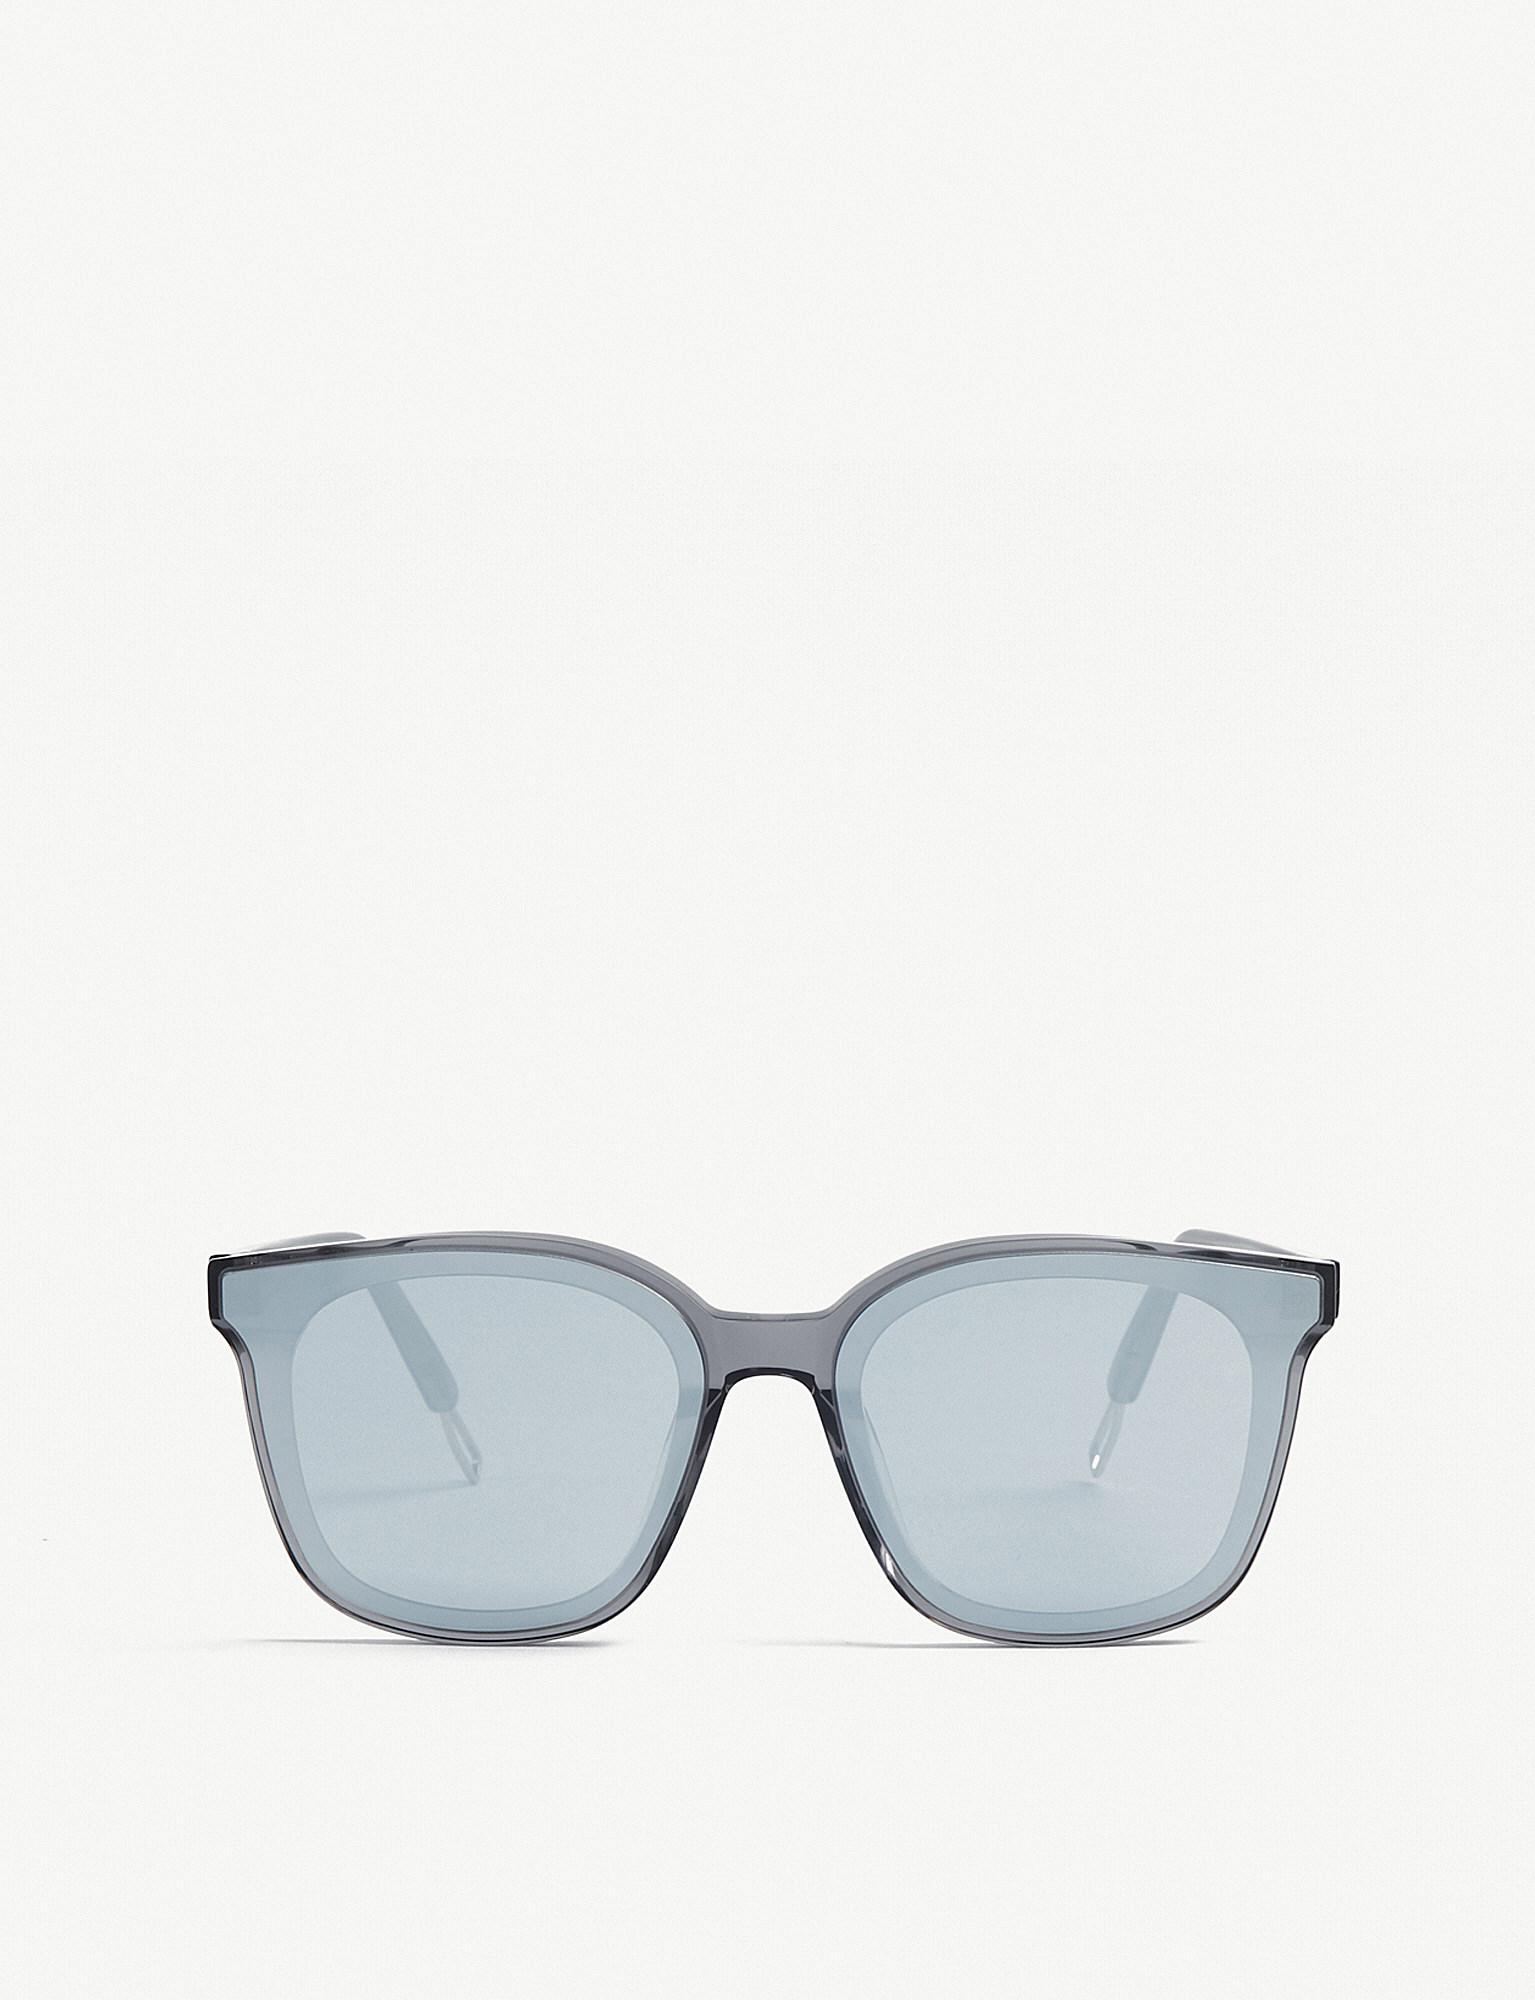 084a74df72 Gentle Monster Papas Acetate And Metal Sunglasses in Gray - Lyst